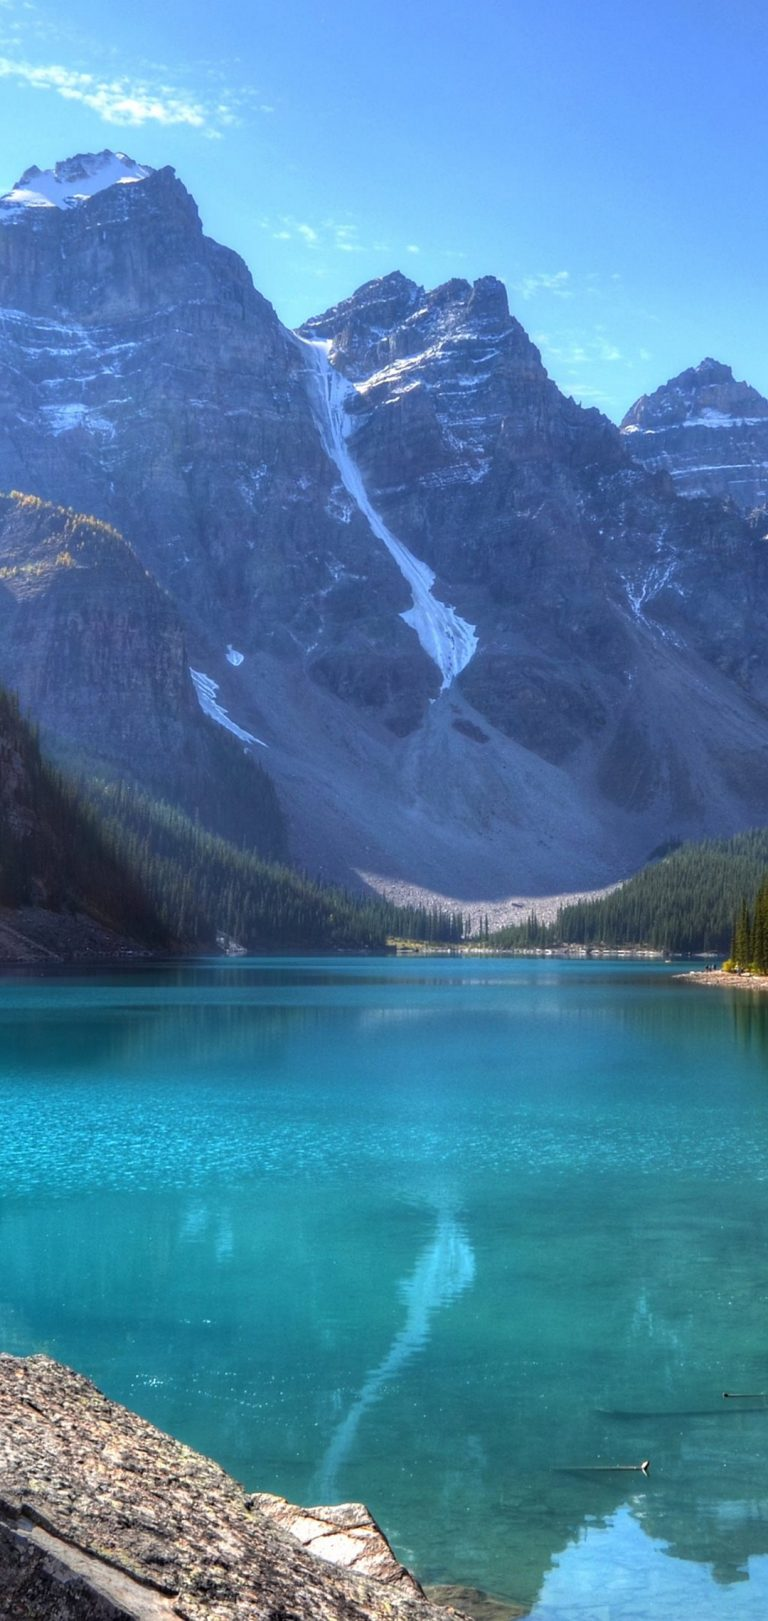 Moraine Lake 4K Ultra HD Wallpaper 4878x3225 Wallpaper 1080x2280 768x1621